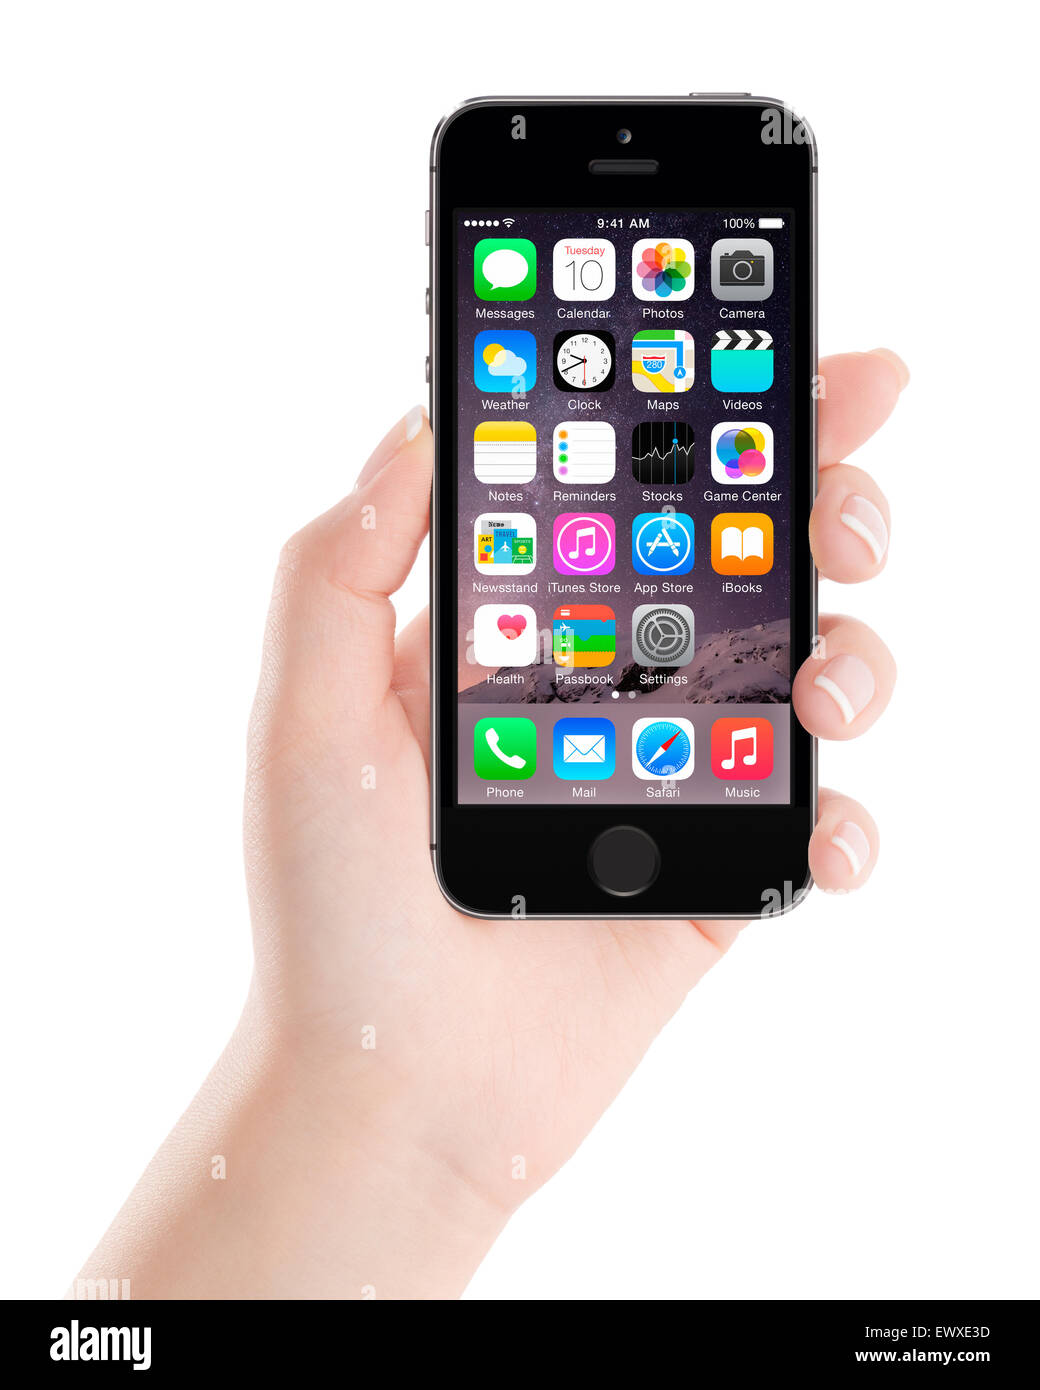 Varna, Bulgaria - December 07, 2013: Female hand holding Apple Space Gray iPhone 5S displaying iOS 8 mobile operating - Stock Image